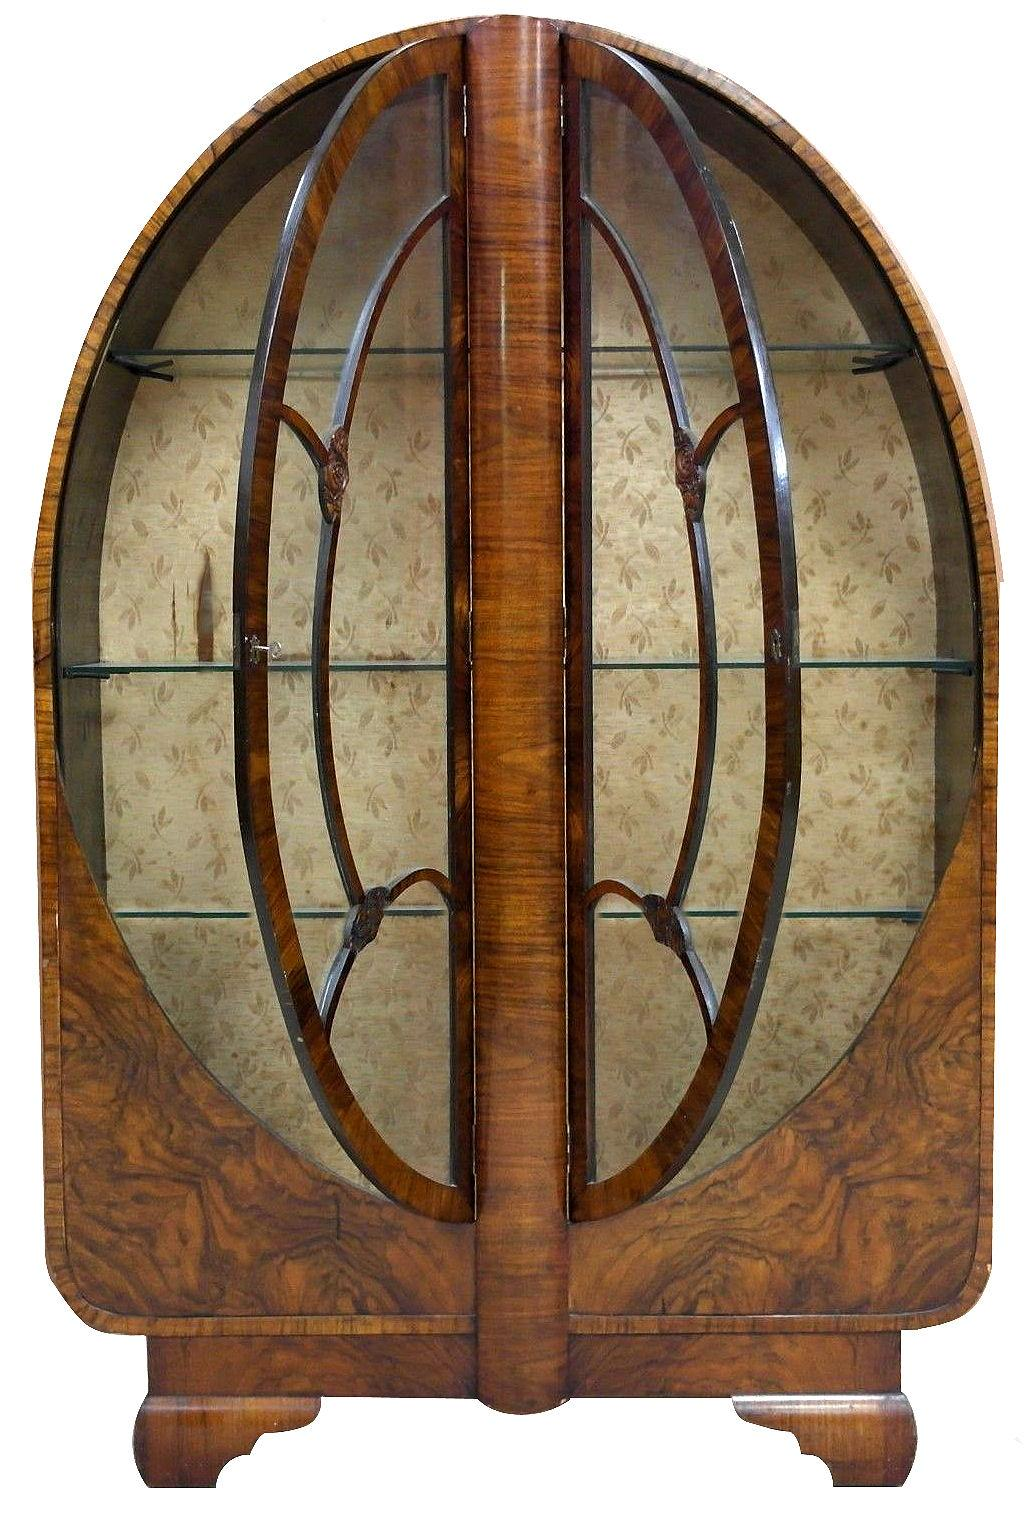 1930s Art Deco Vitrine Display Cabinet In Walnut For Sale